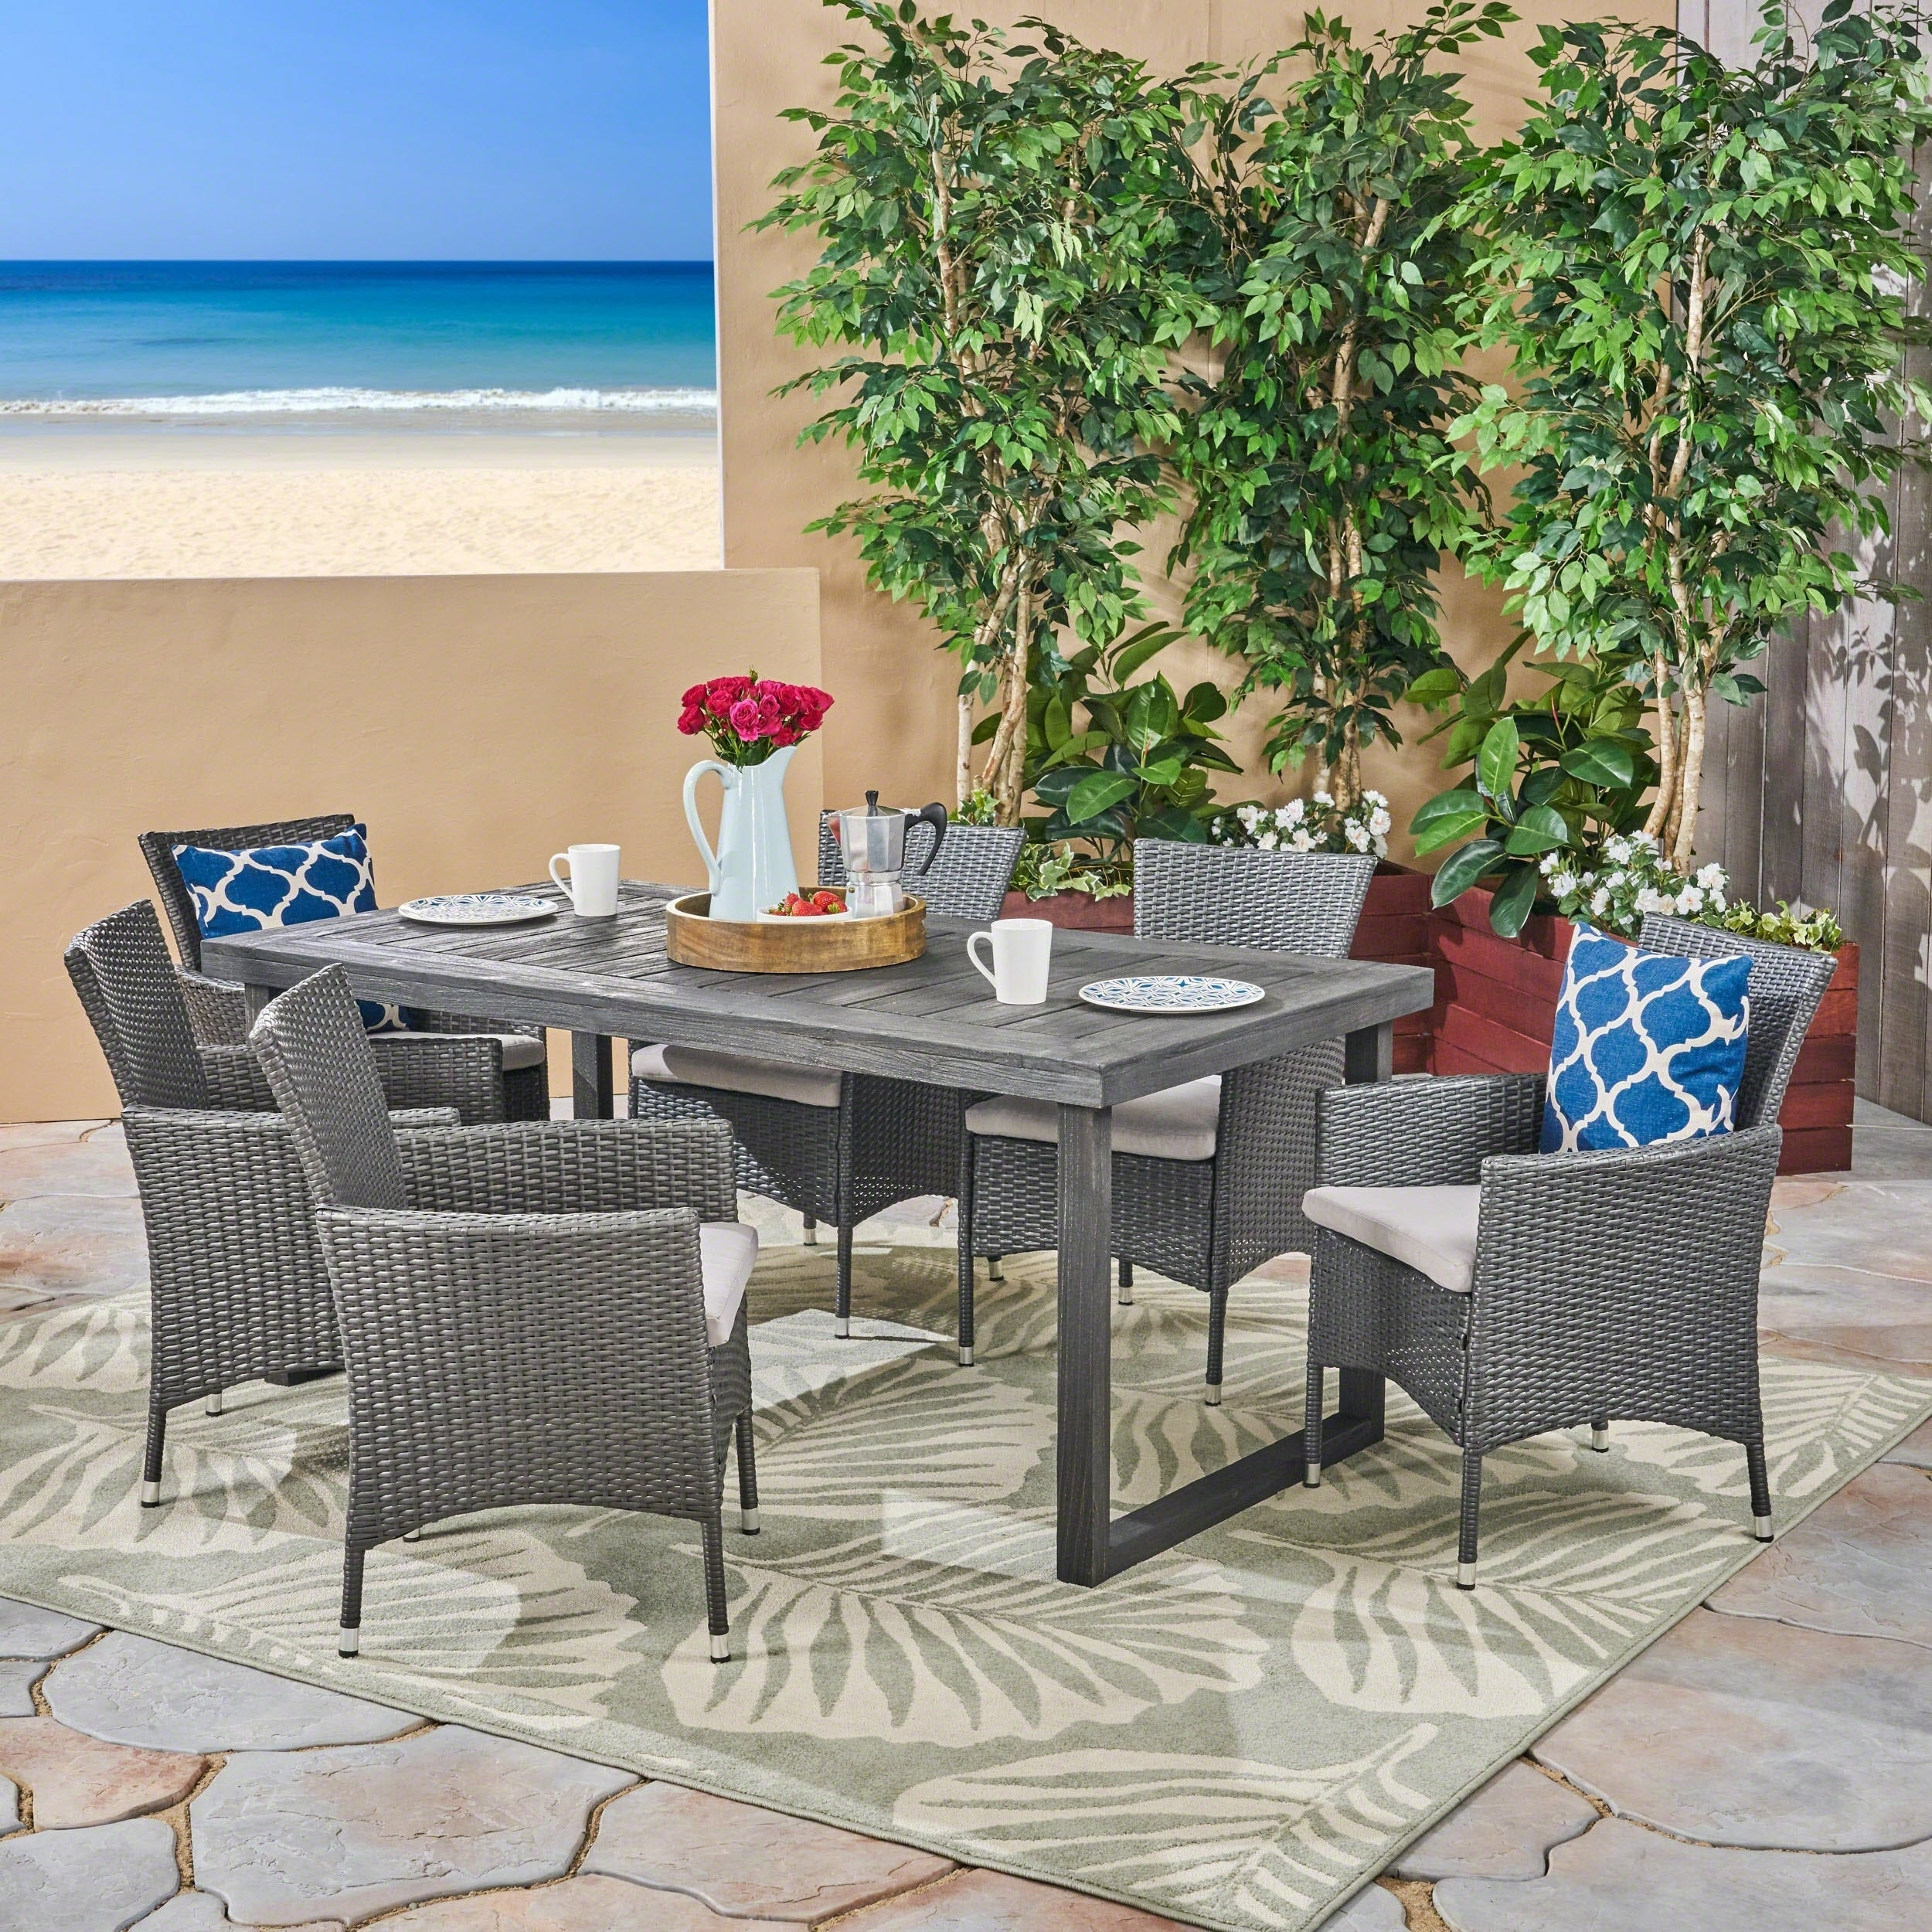 Moralis outdoor 6 seater acacia wood dining set with wicker chairs by christopher knight home